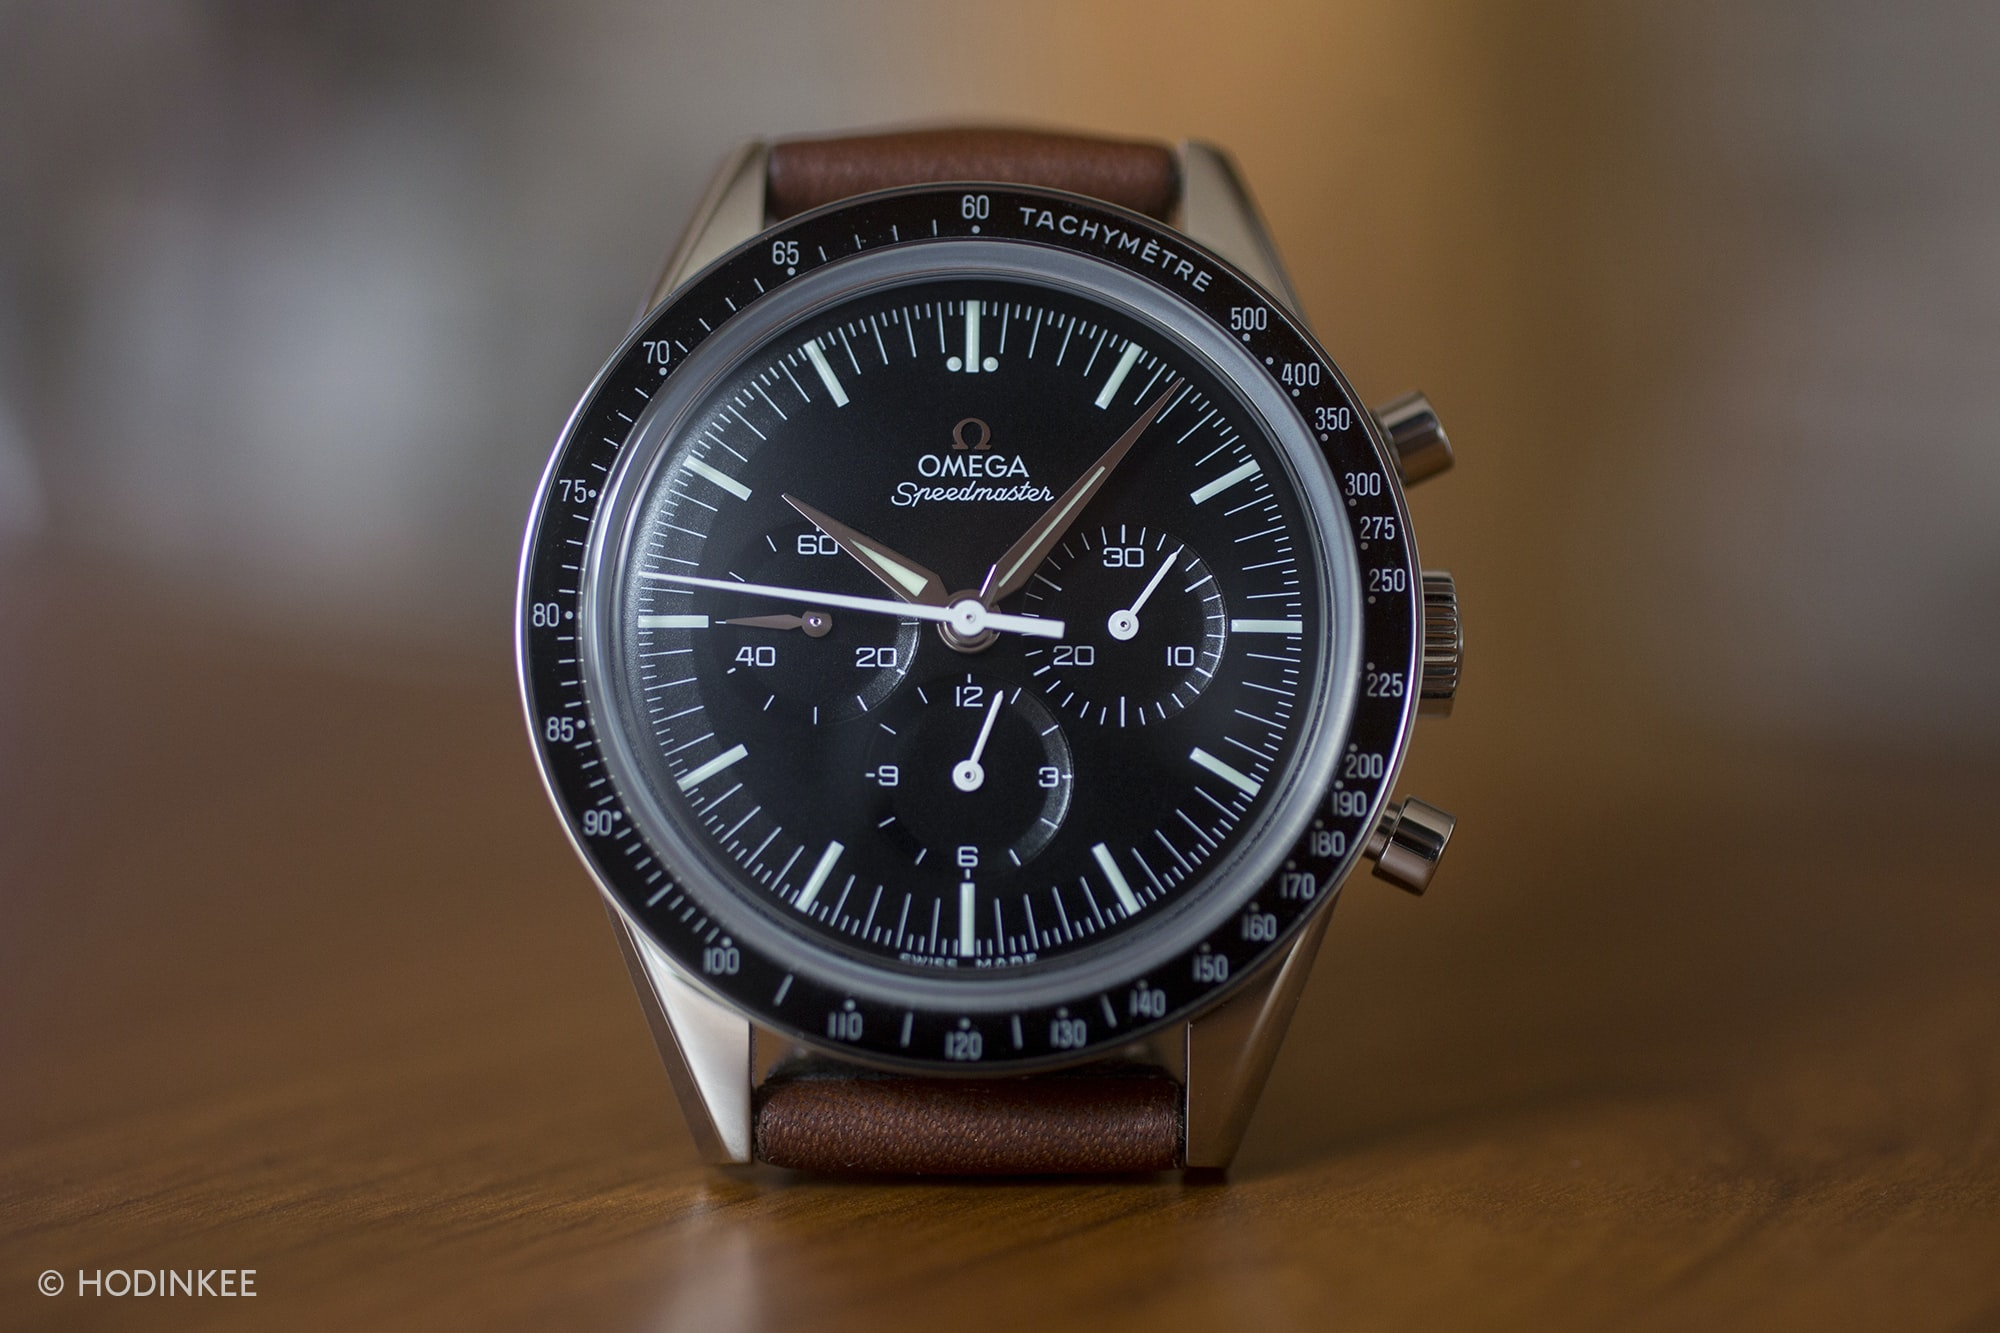 Omega Speedmaster First Omega In Space Review A Week On The Wrist: The Omega Speedmaster 'First Omega In Space' A Week On The Wrist: The Omega Speedmaster 'First Omega In Space' 588A0269 copy